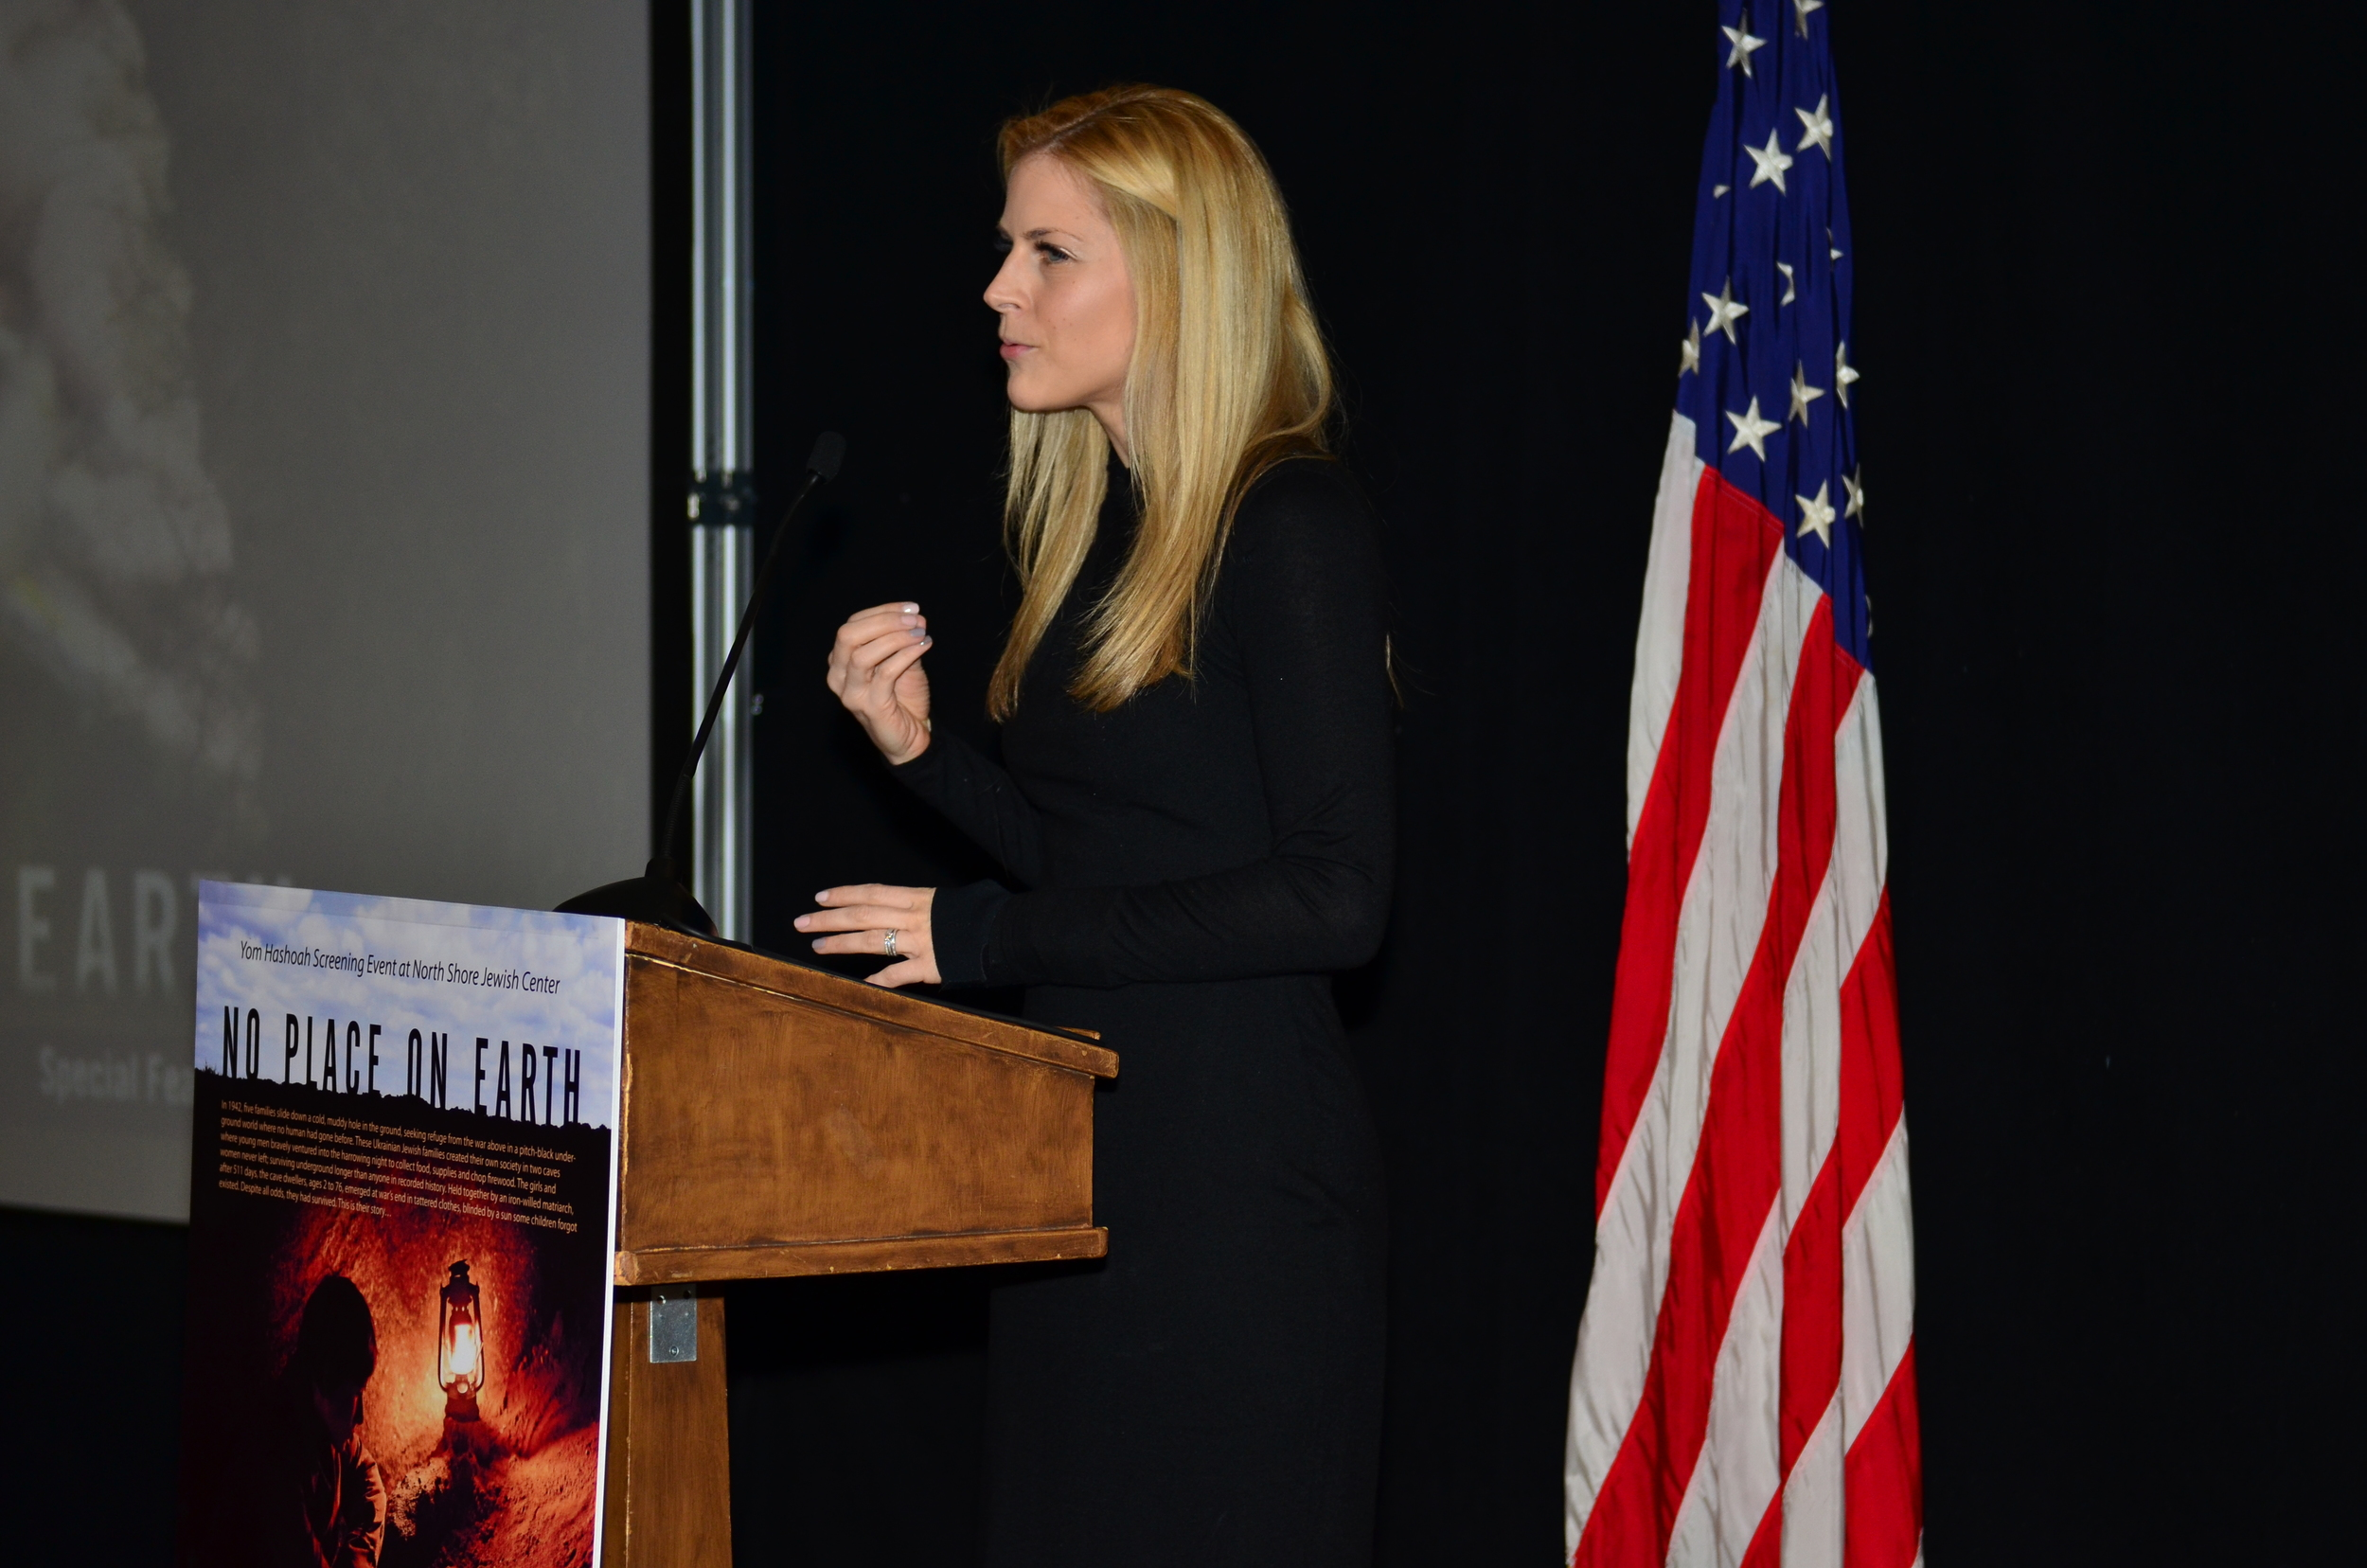 Hosting a FIlm Screening for The History Channel